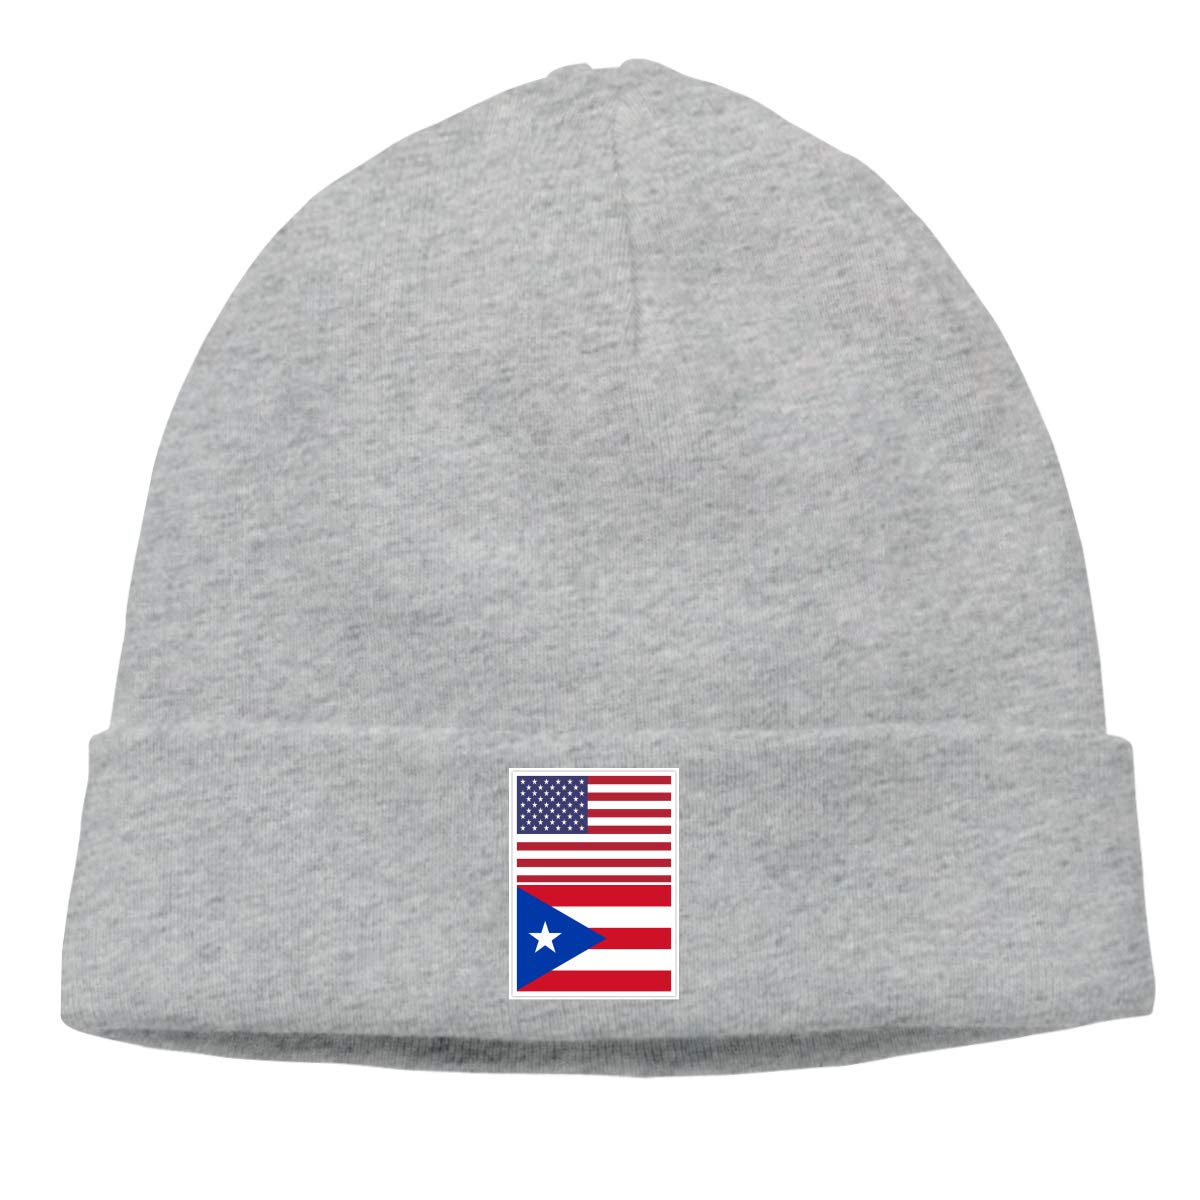 Men Women American Flag and Puerto Rico Flag Soft Beanie Hat